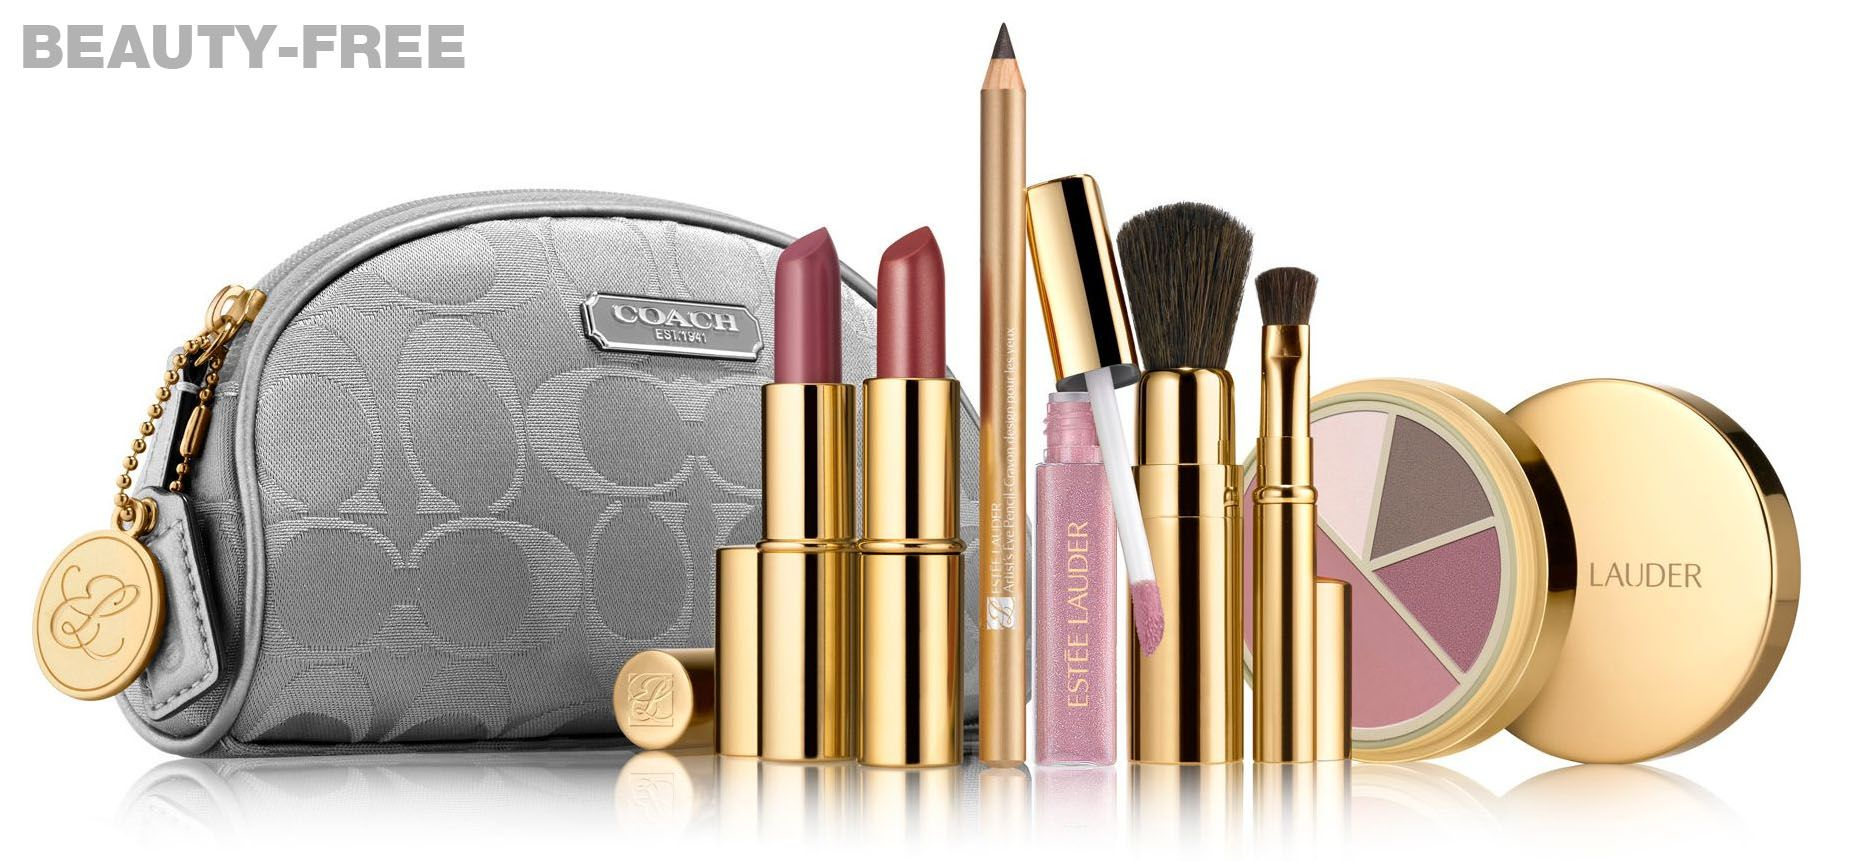 Fresh Spring Look with the Estée Lauder Act IV Collection